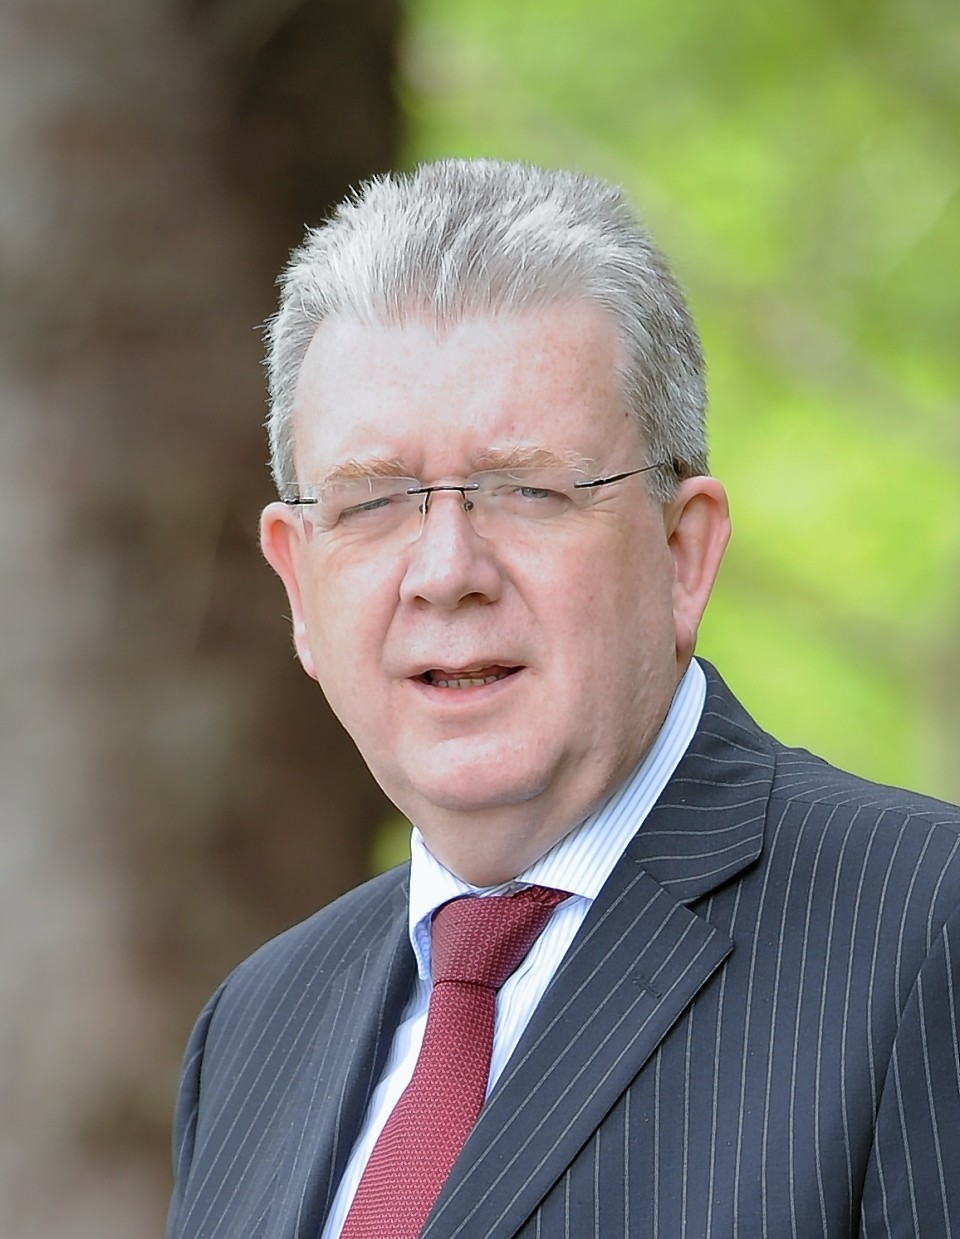 Argyll and Bute MSP Mike Russell has be appointed a university professor despite the party's opposition to parliamentarians having second jobs.